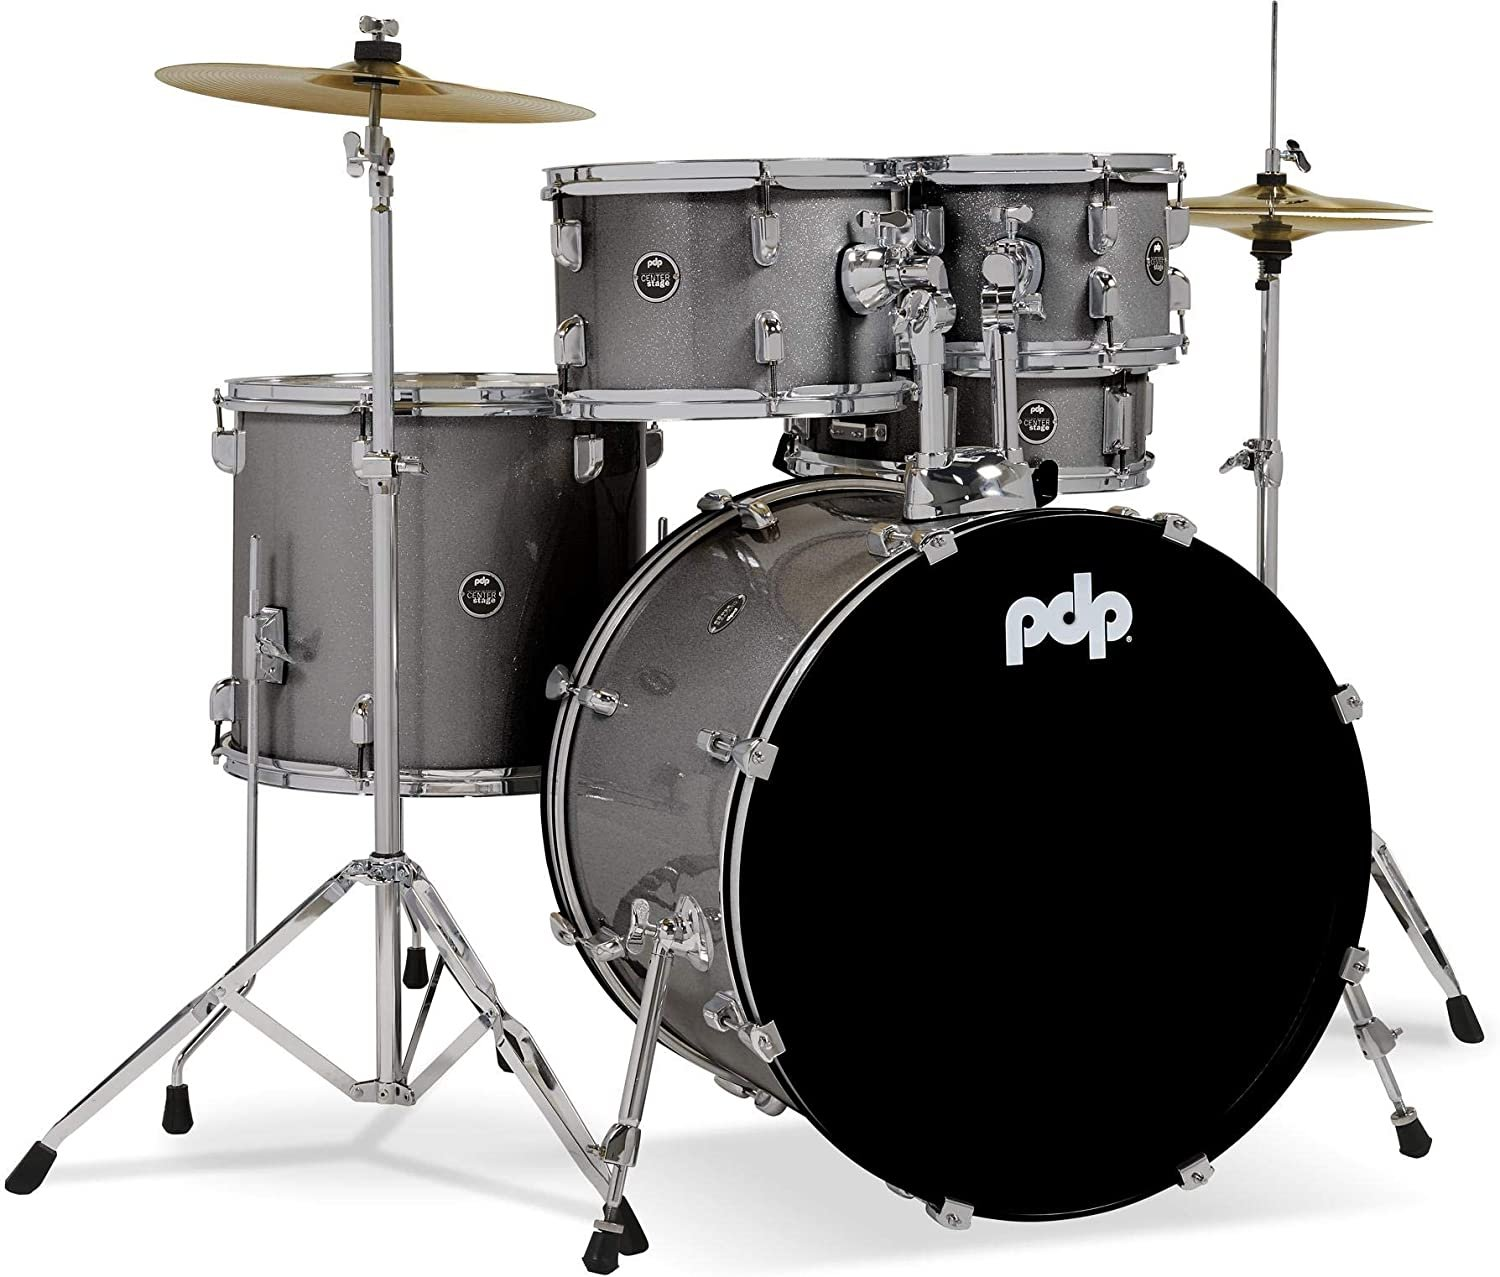 PDP CENTER STAGE 5-PIECE DRUM KIT W CYMBALS & HARDWARE, SILVER SPARKLE